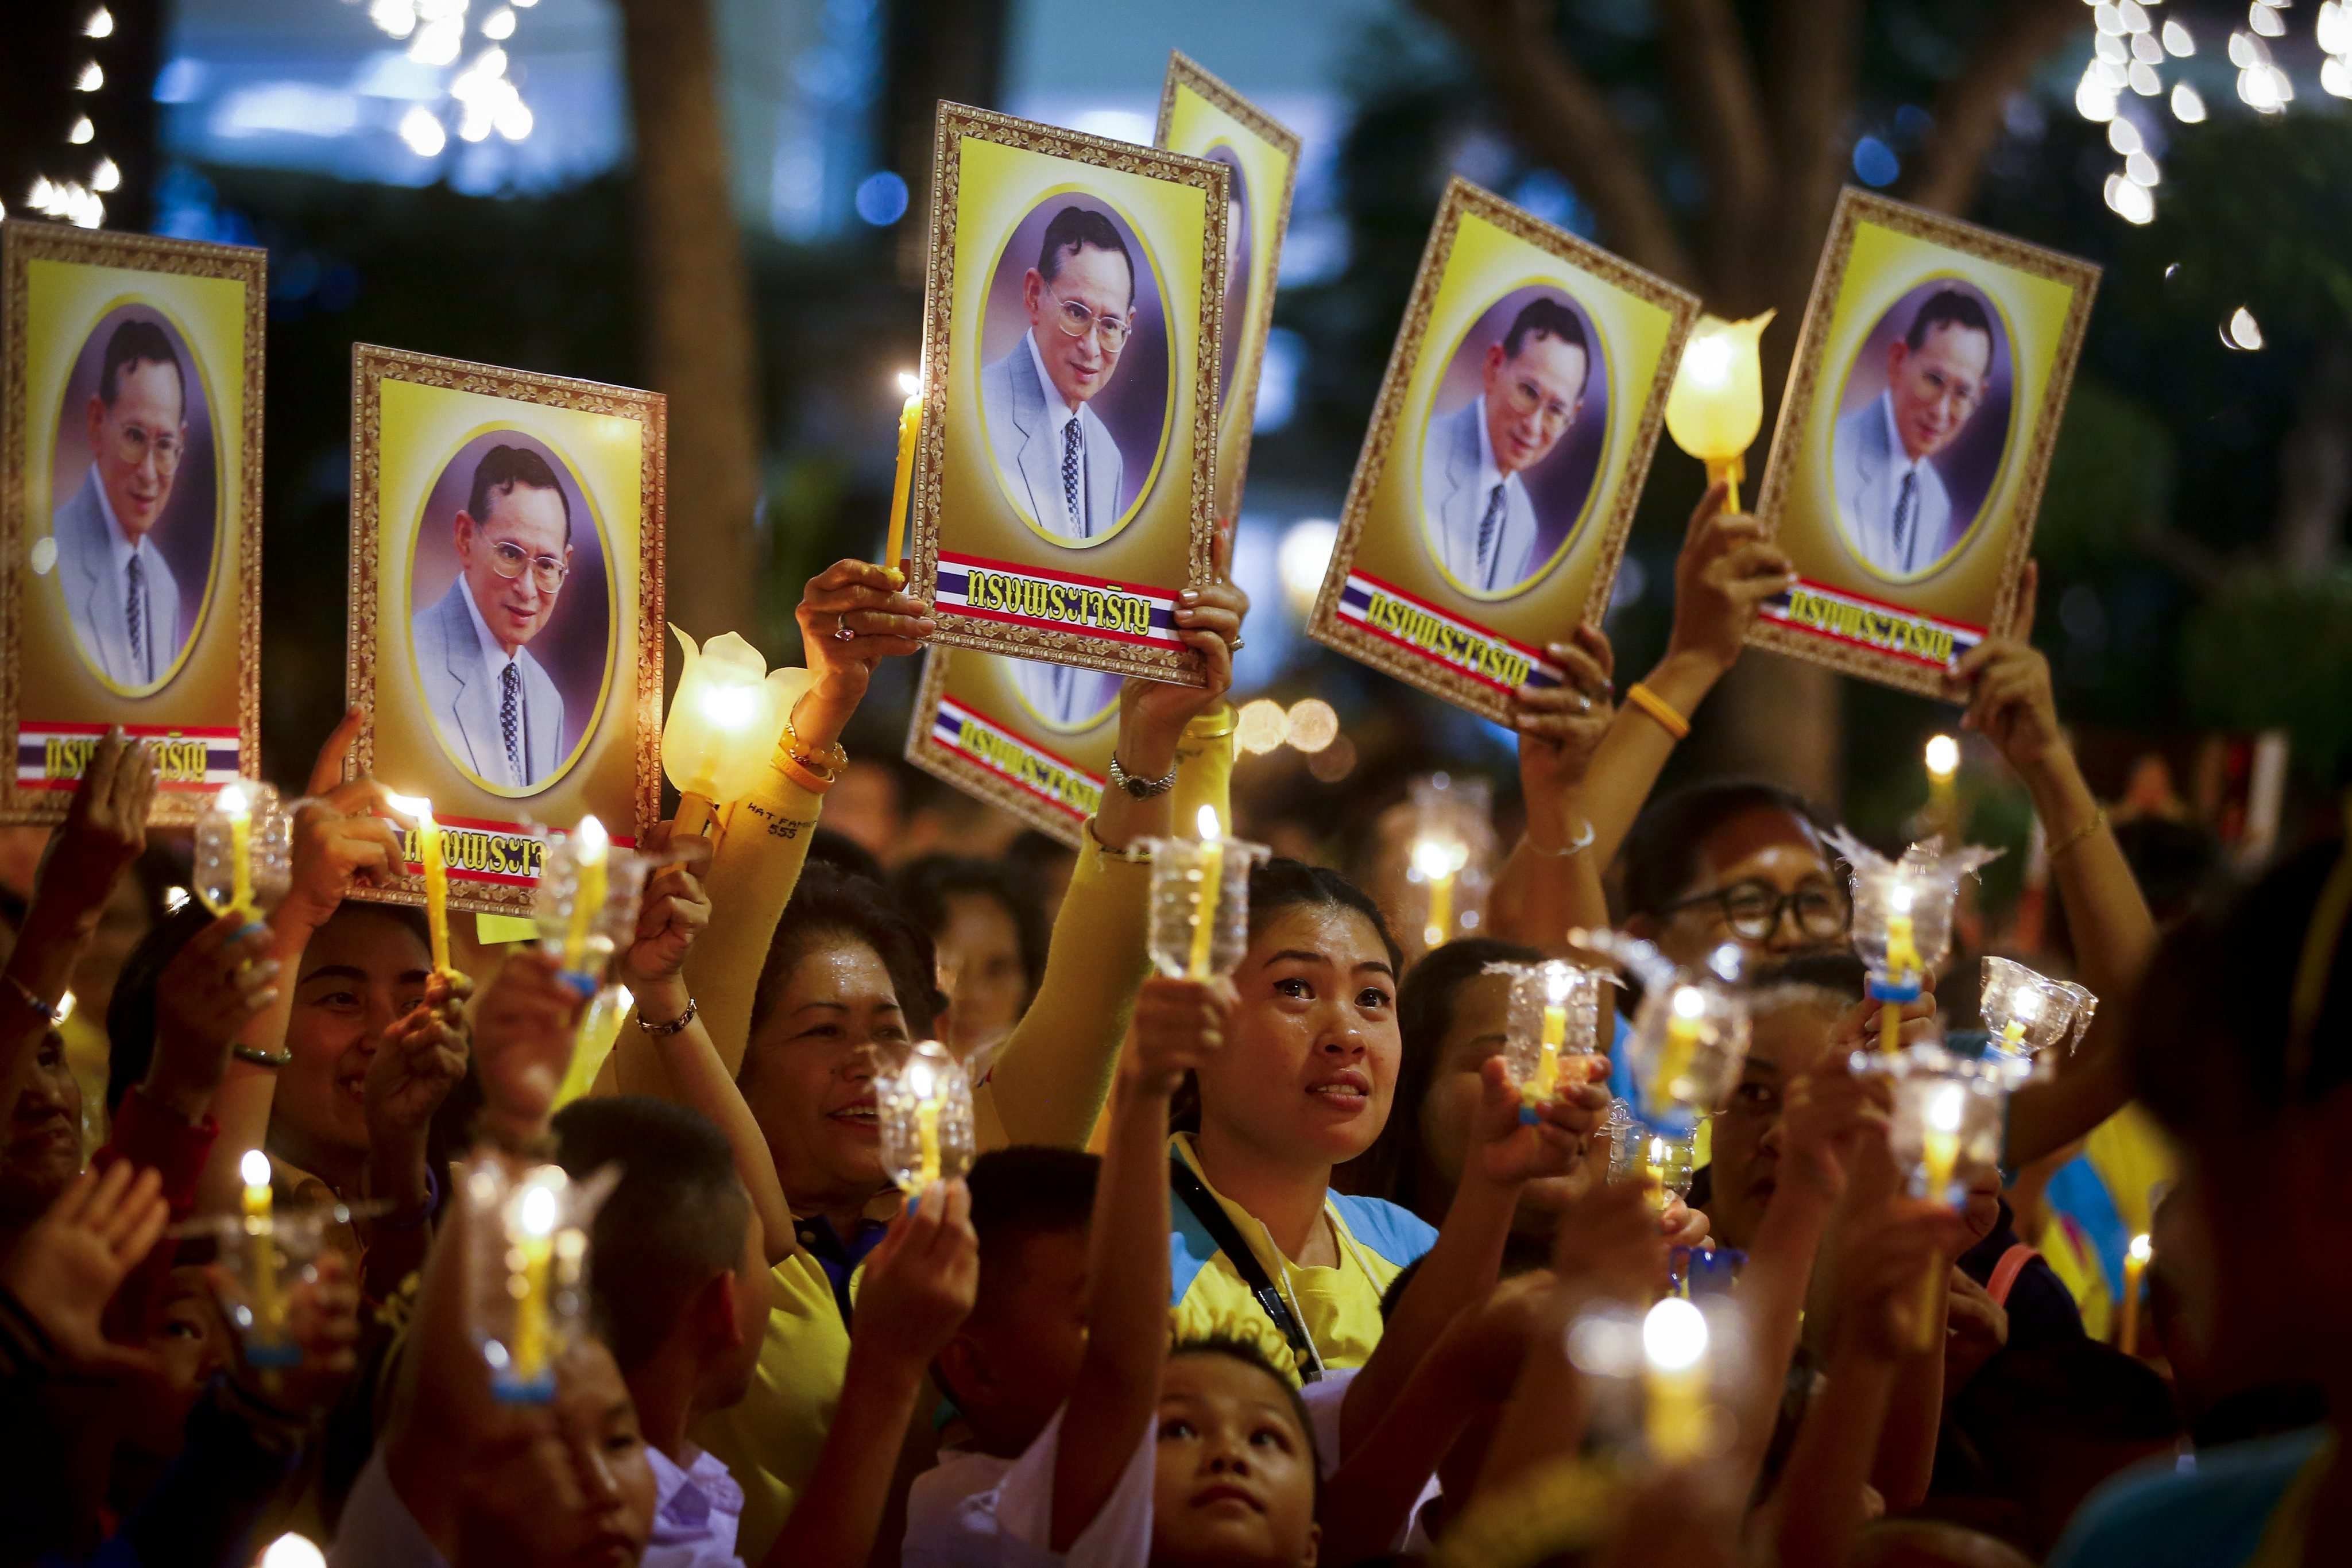 Thai well-wishers light candles and hold up portraits of Thai King Bhumibol Adulyadej during his 88th birthday celebration at Siriraj Hospital in Bangkok, on Dec. 5, 2015.